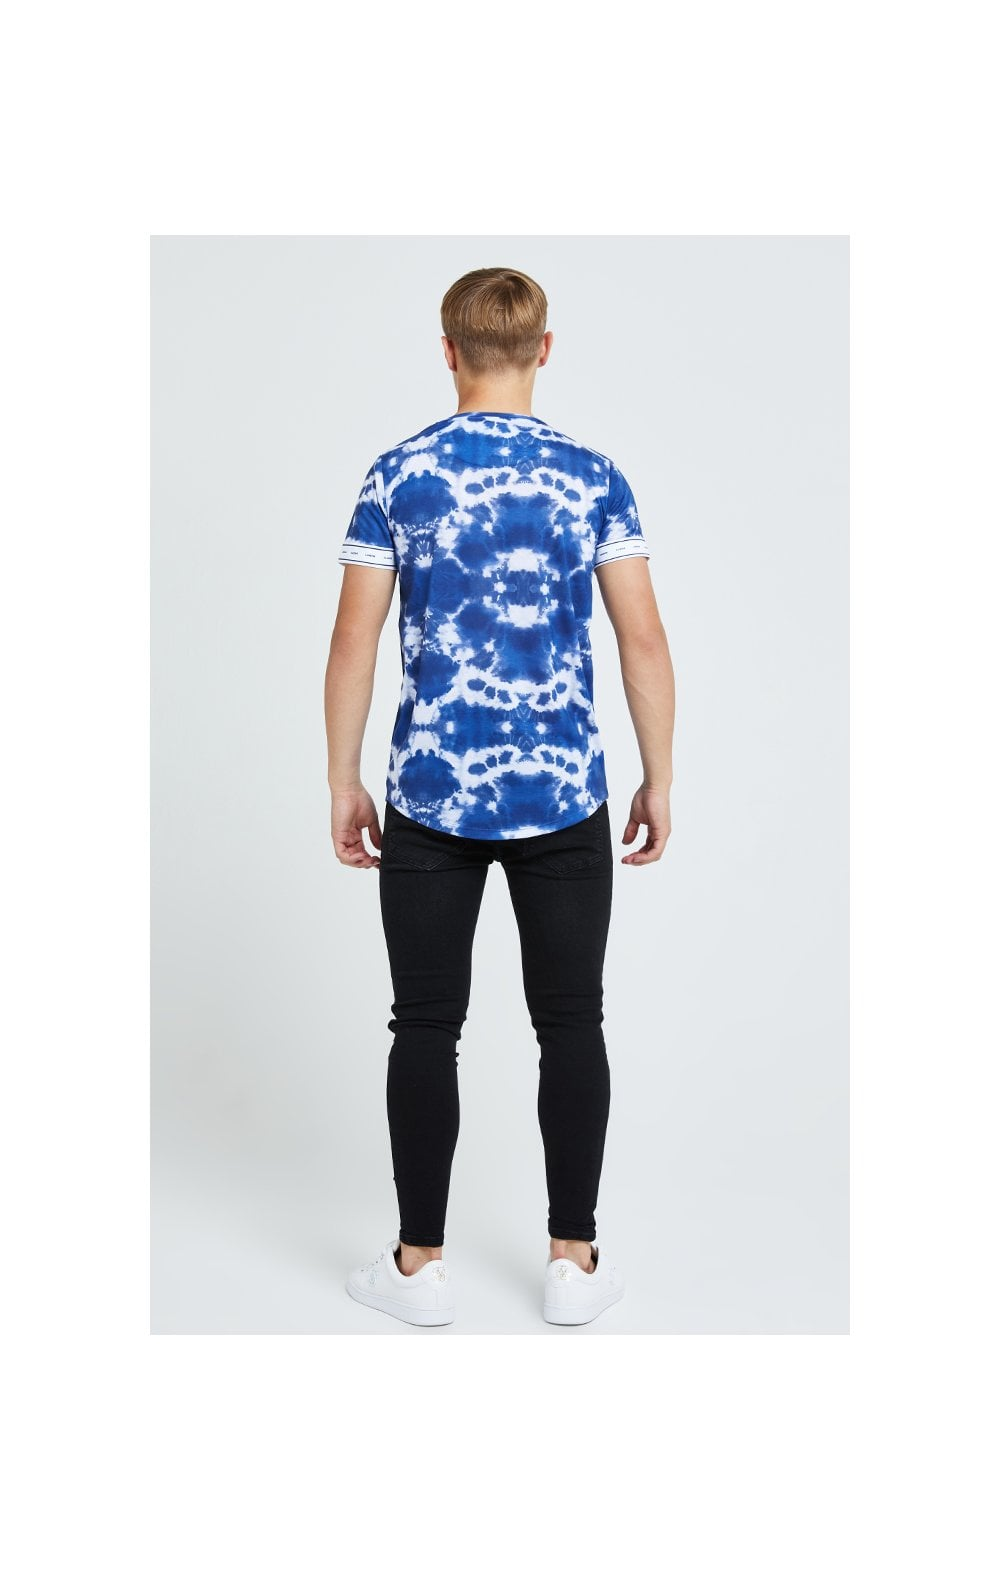 Illusive London Tie Dye Print Tech Tee - Blue & White (4)